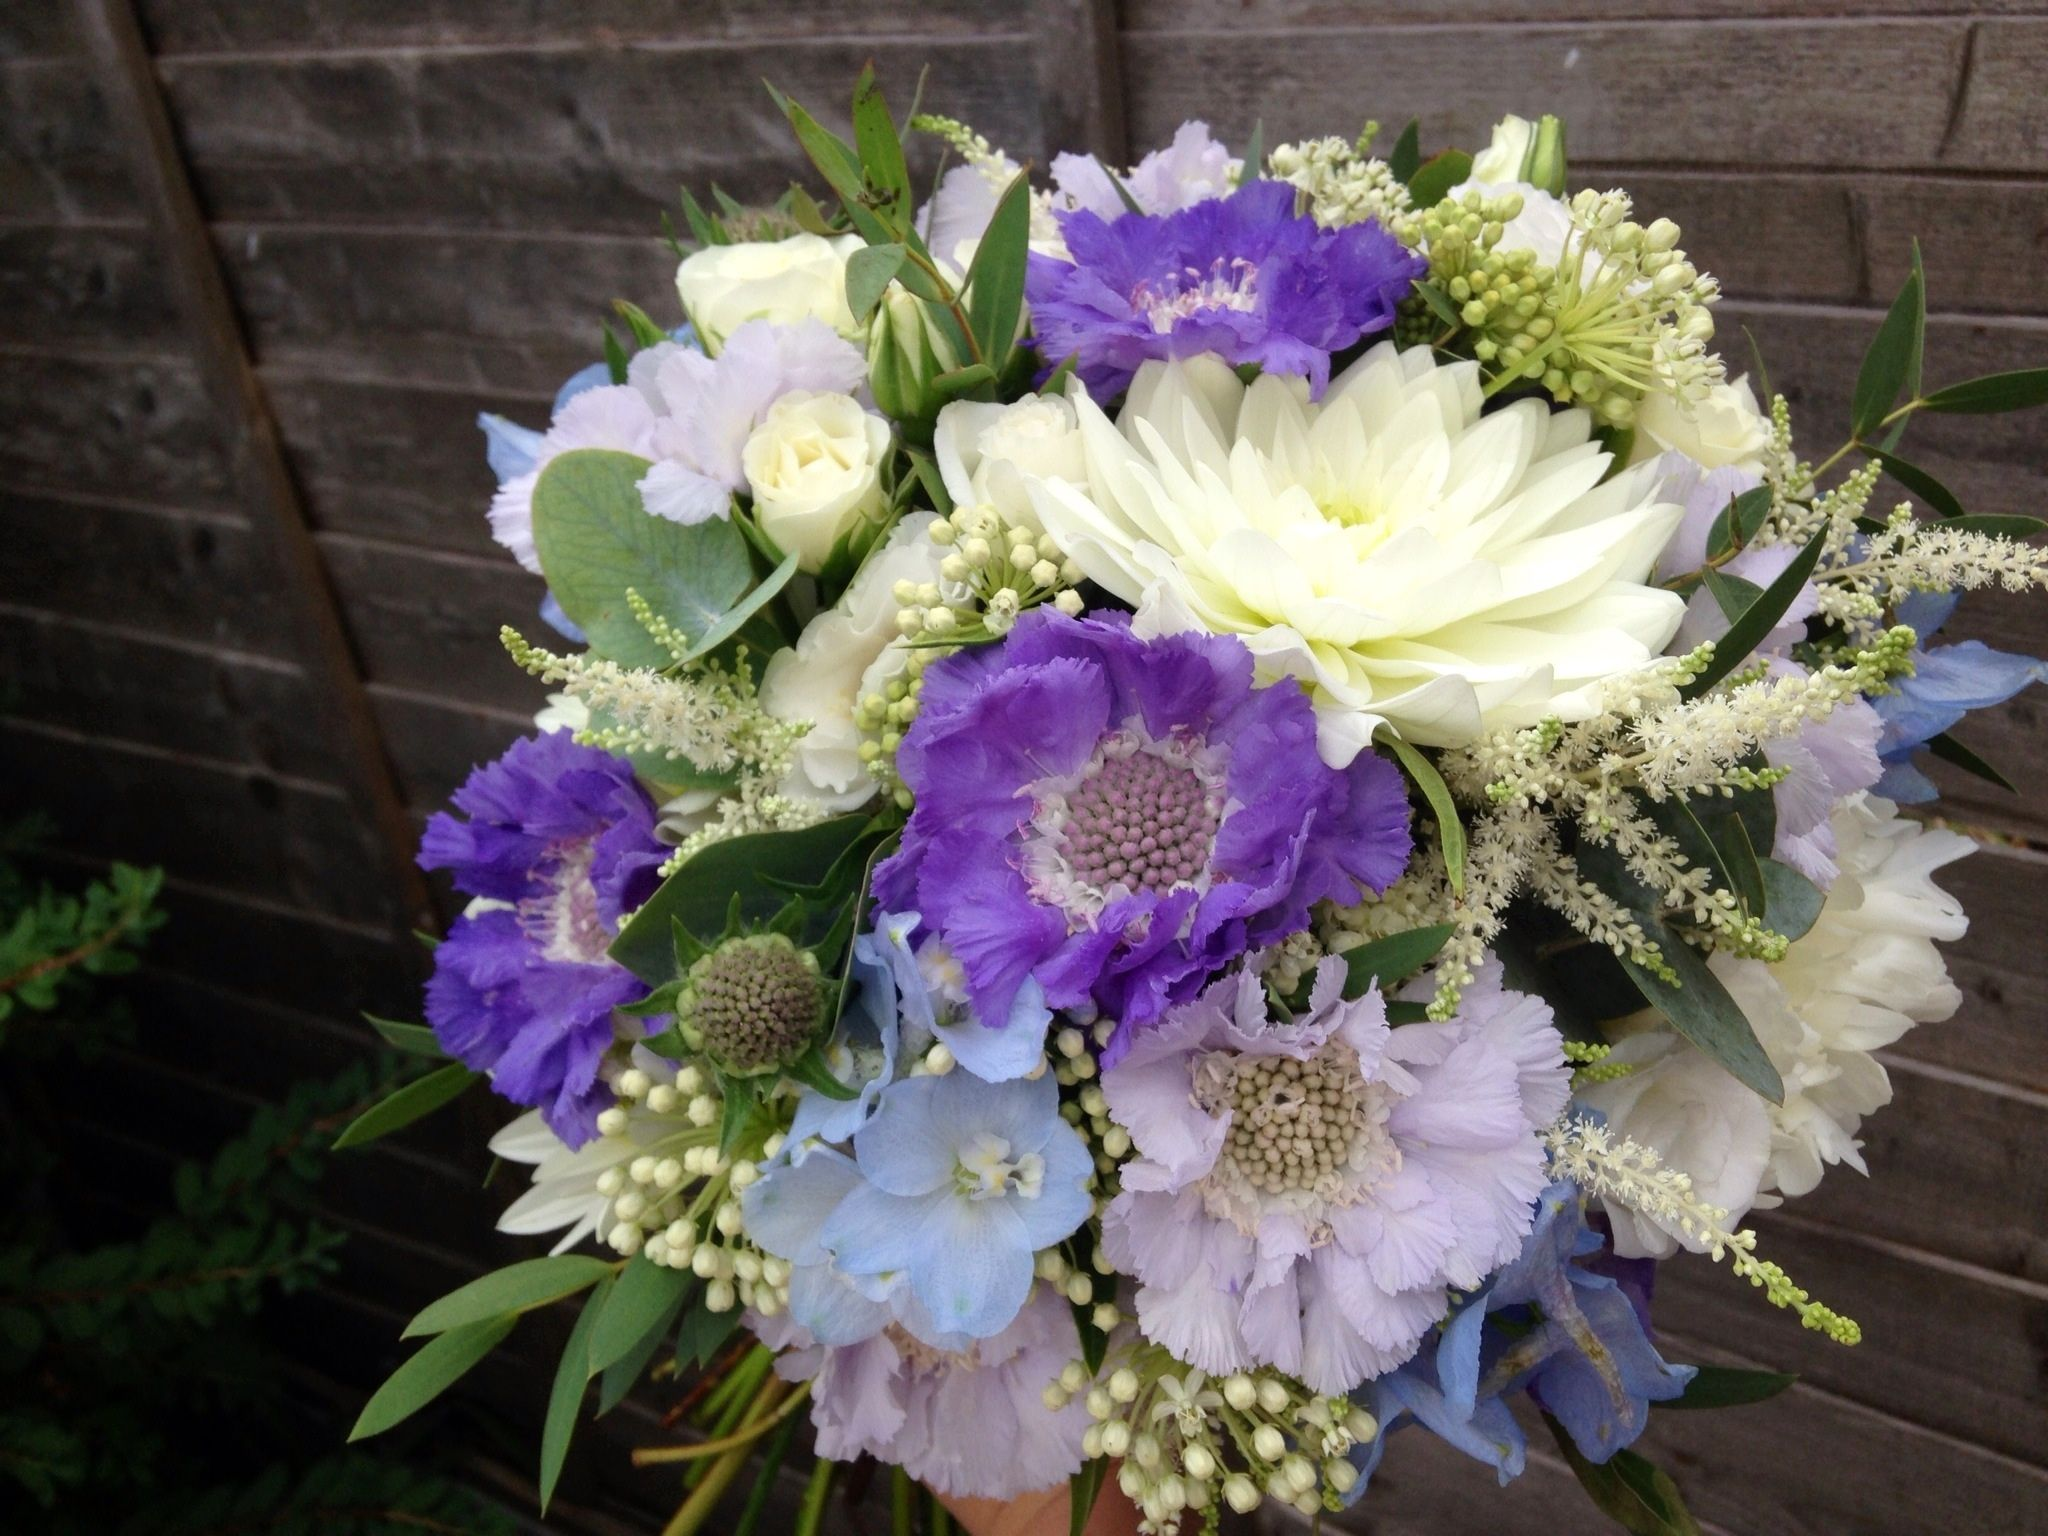 Wild wedding flowers white and purple google search purple kingscote barn wedding flowers pretty summer blue and white wedding flowers the rose shed izmirmasajfo Choice Image